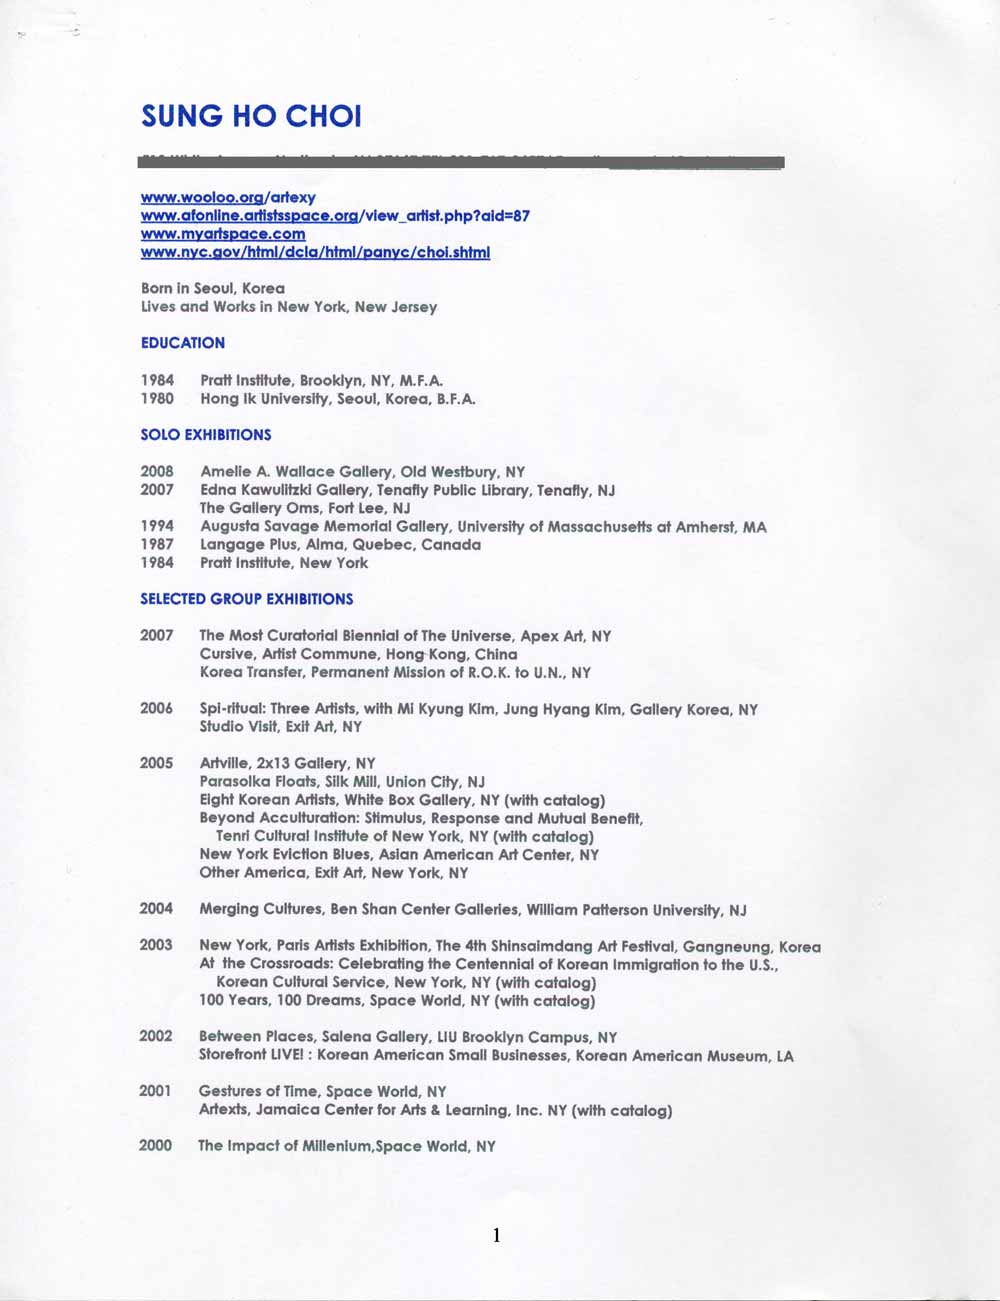 Sung Ho Choi's Resume, pg 1